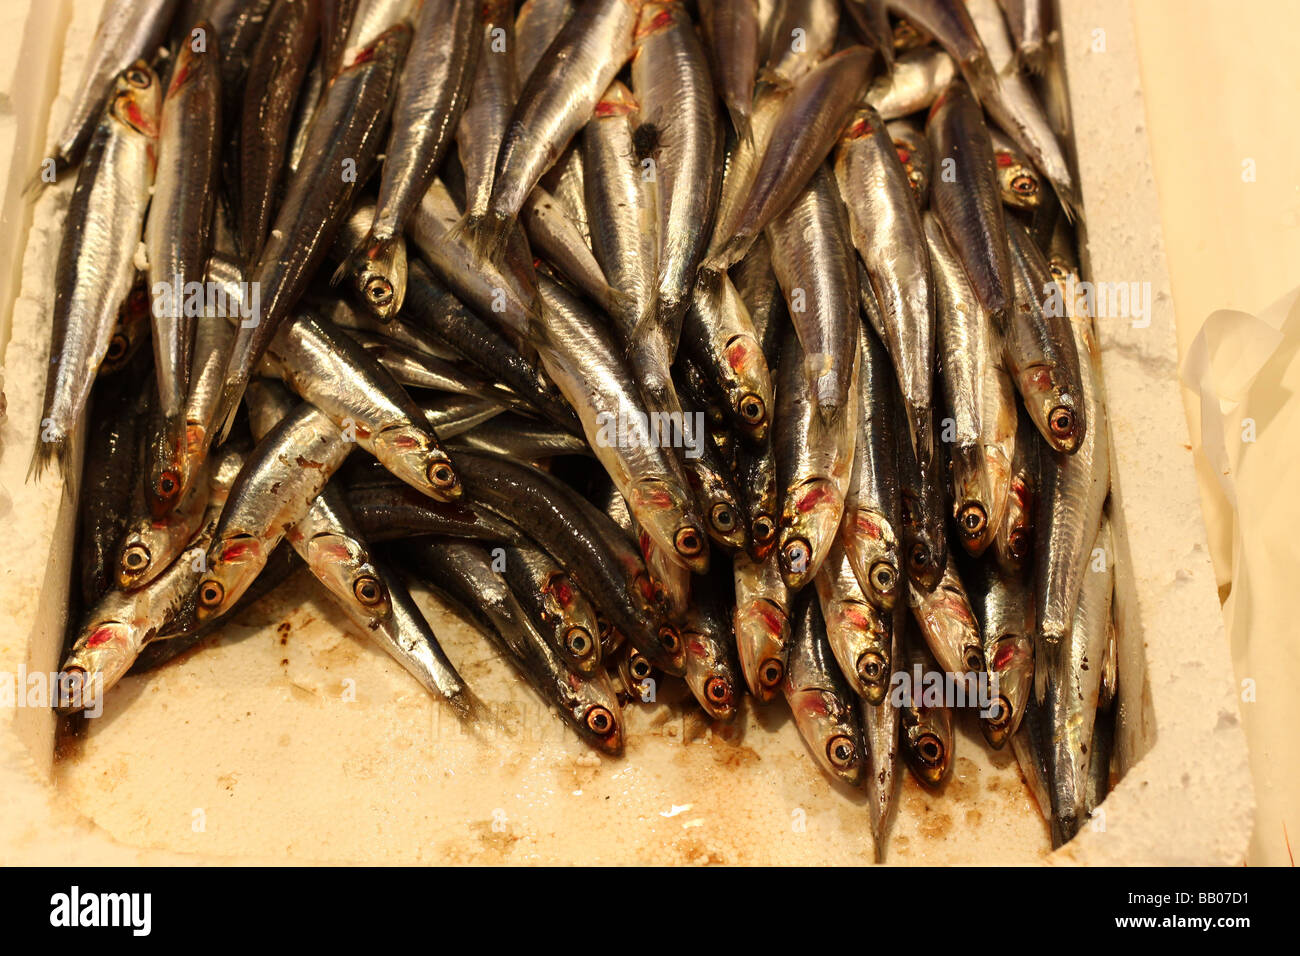 Anchovies at a market in Rome, Italy. - Stock Image